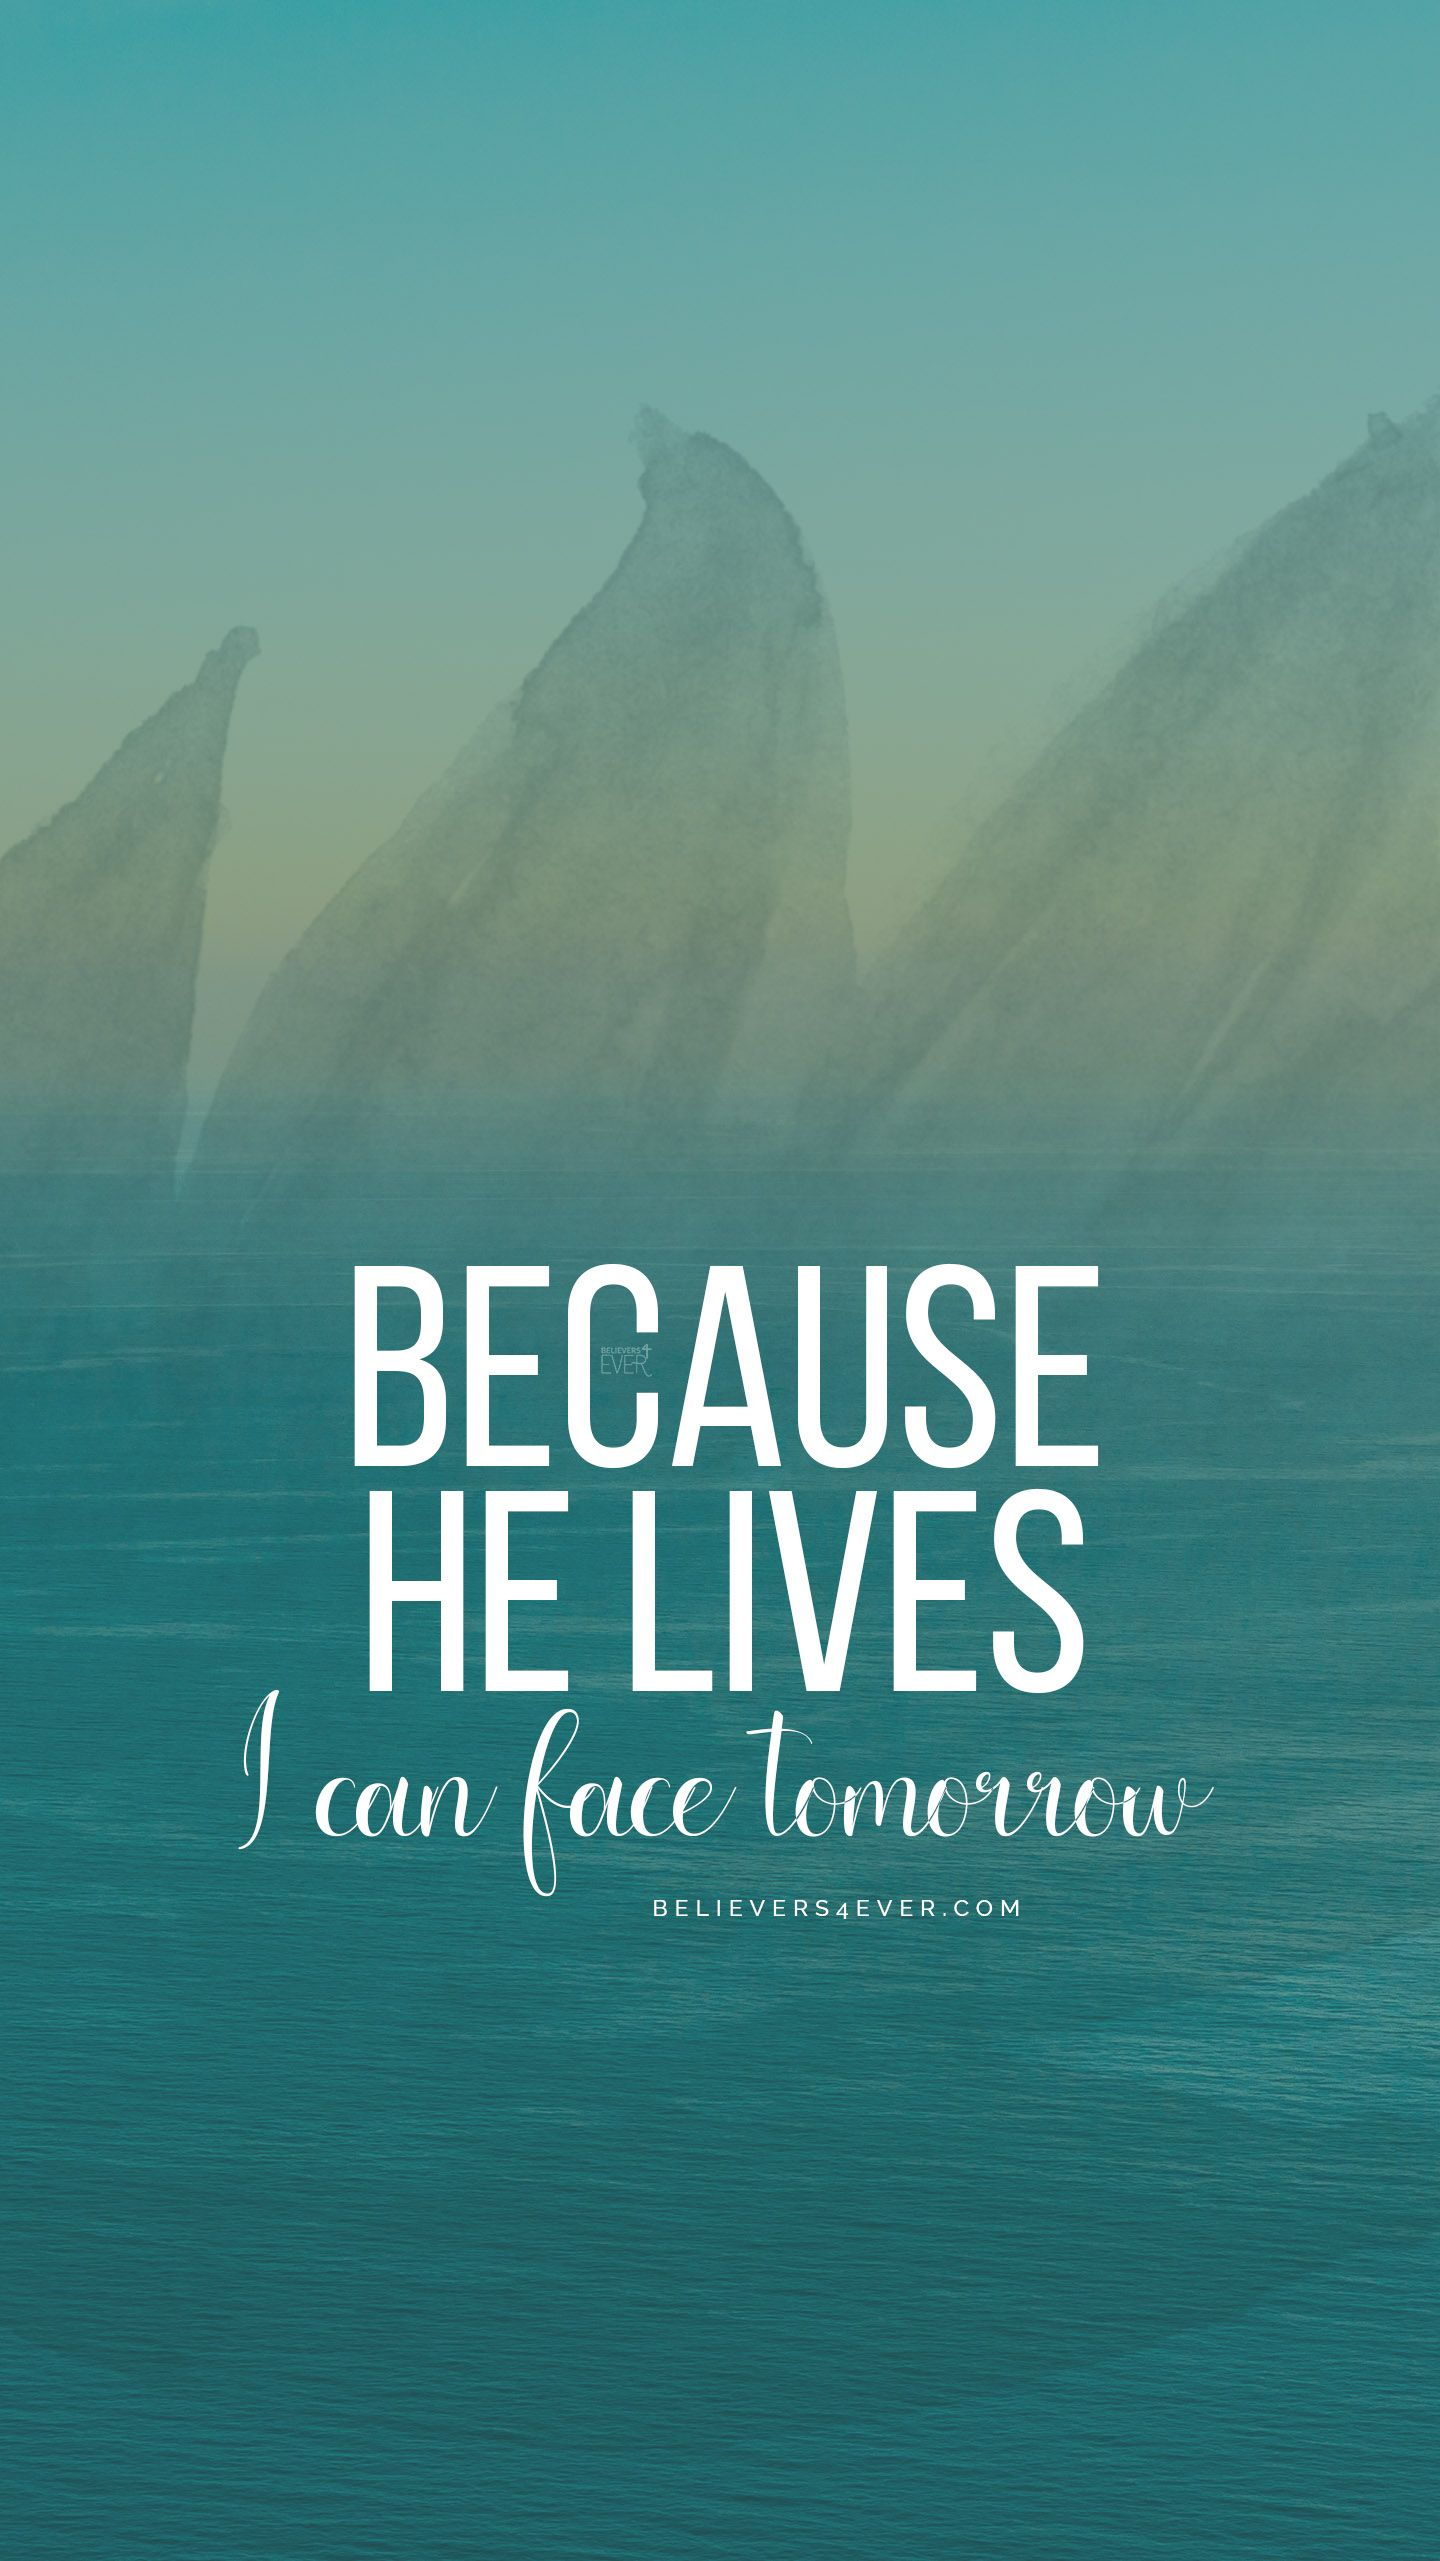 Because he lives mobile wallpaper #mobile #wallpaper #iphonewallpaper #android #christian